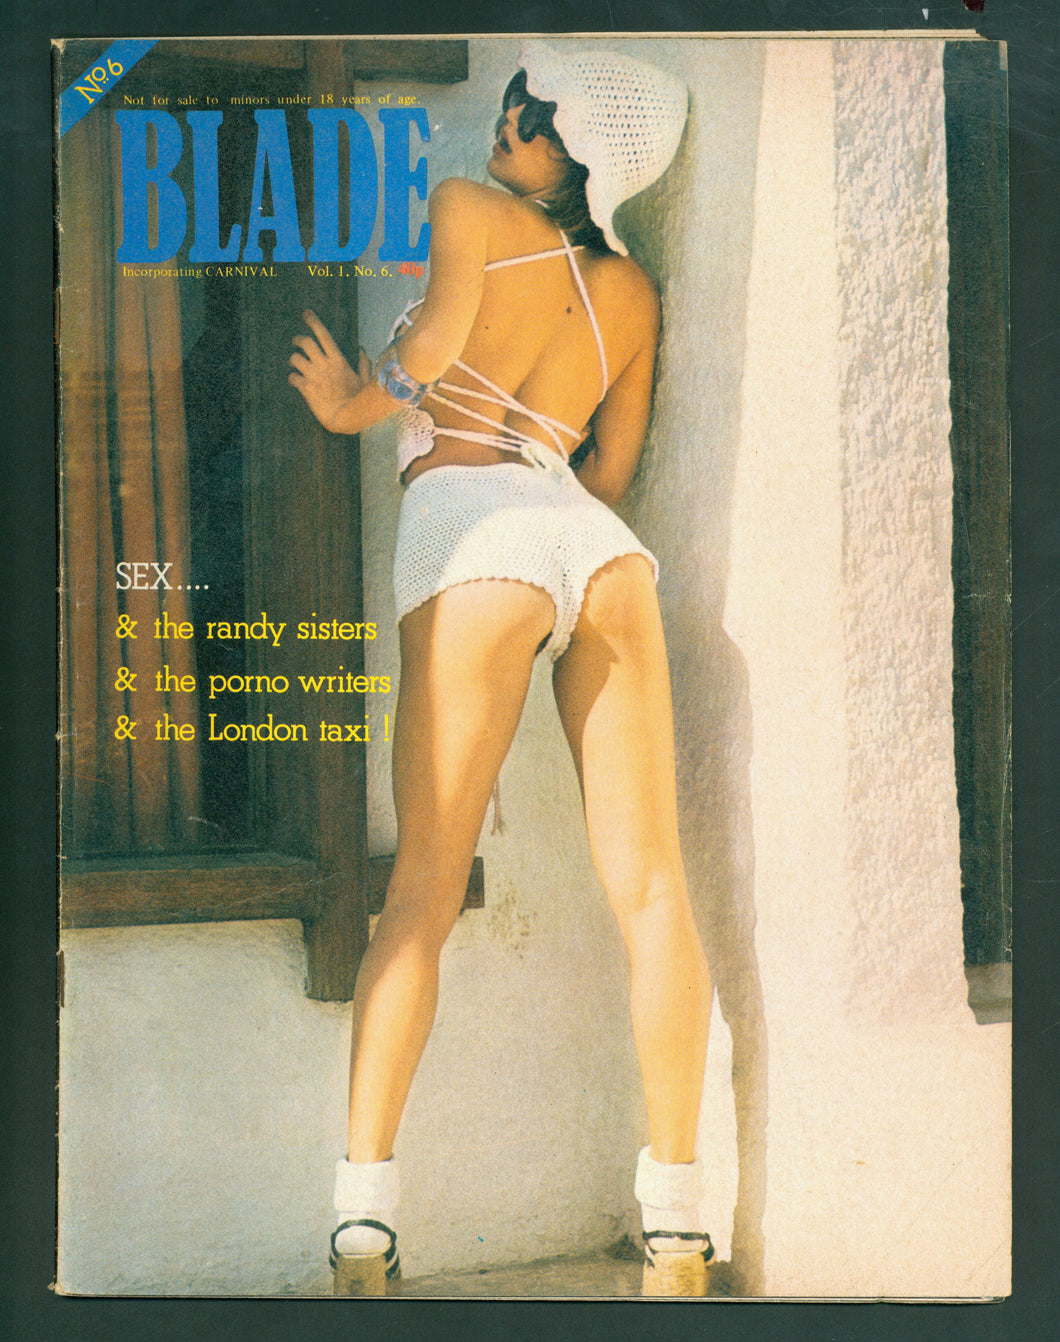 Blade Vol 1 No 6 Nov 1975